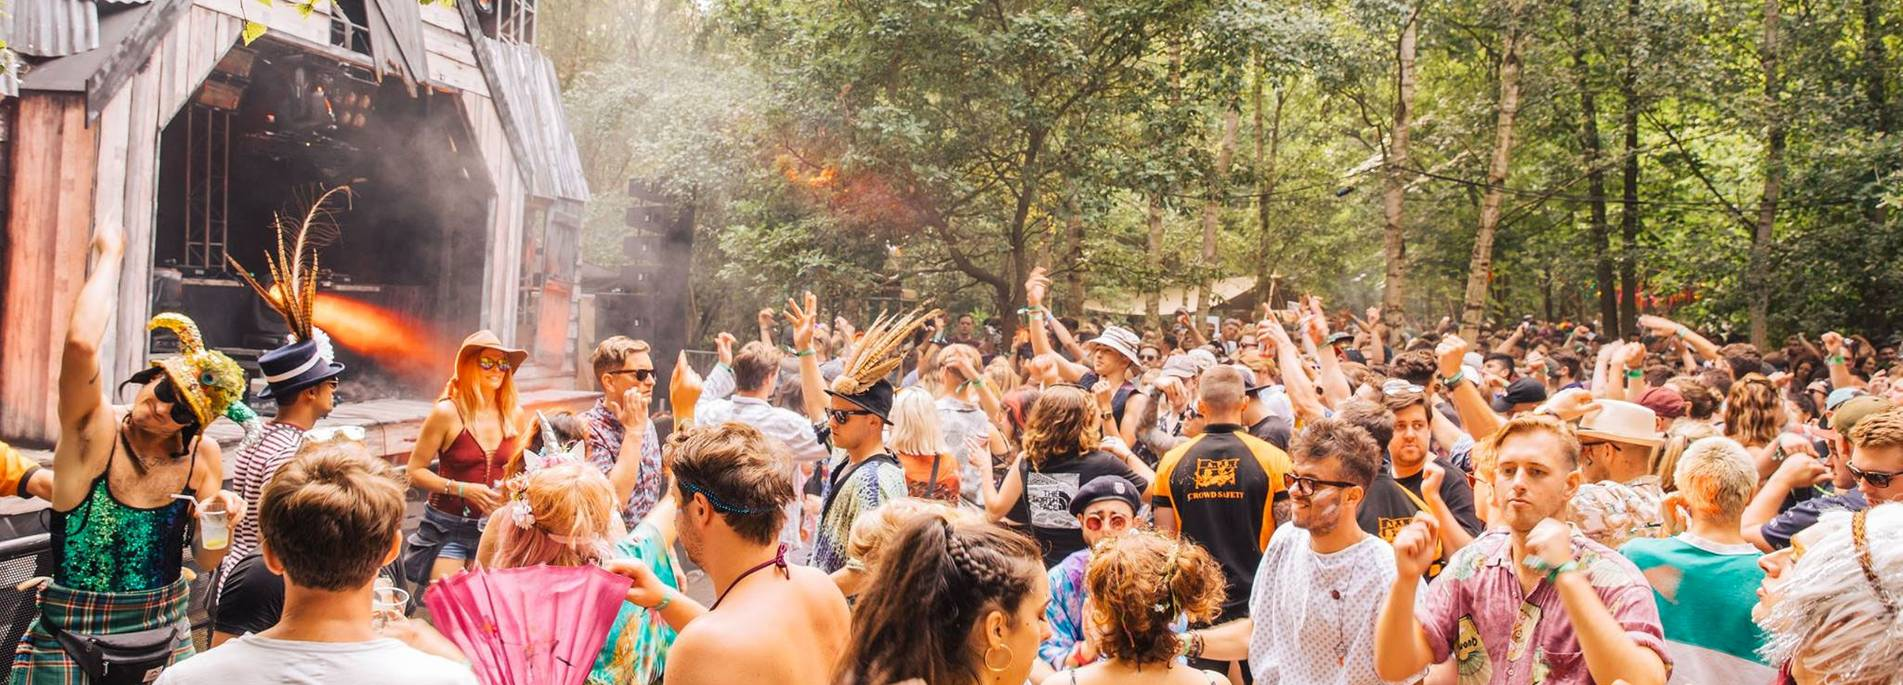 5 Mixes To Get You Rave-Ready